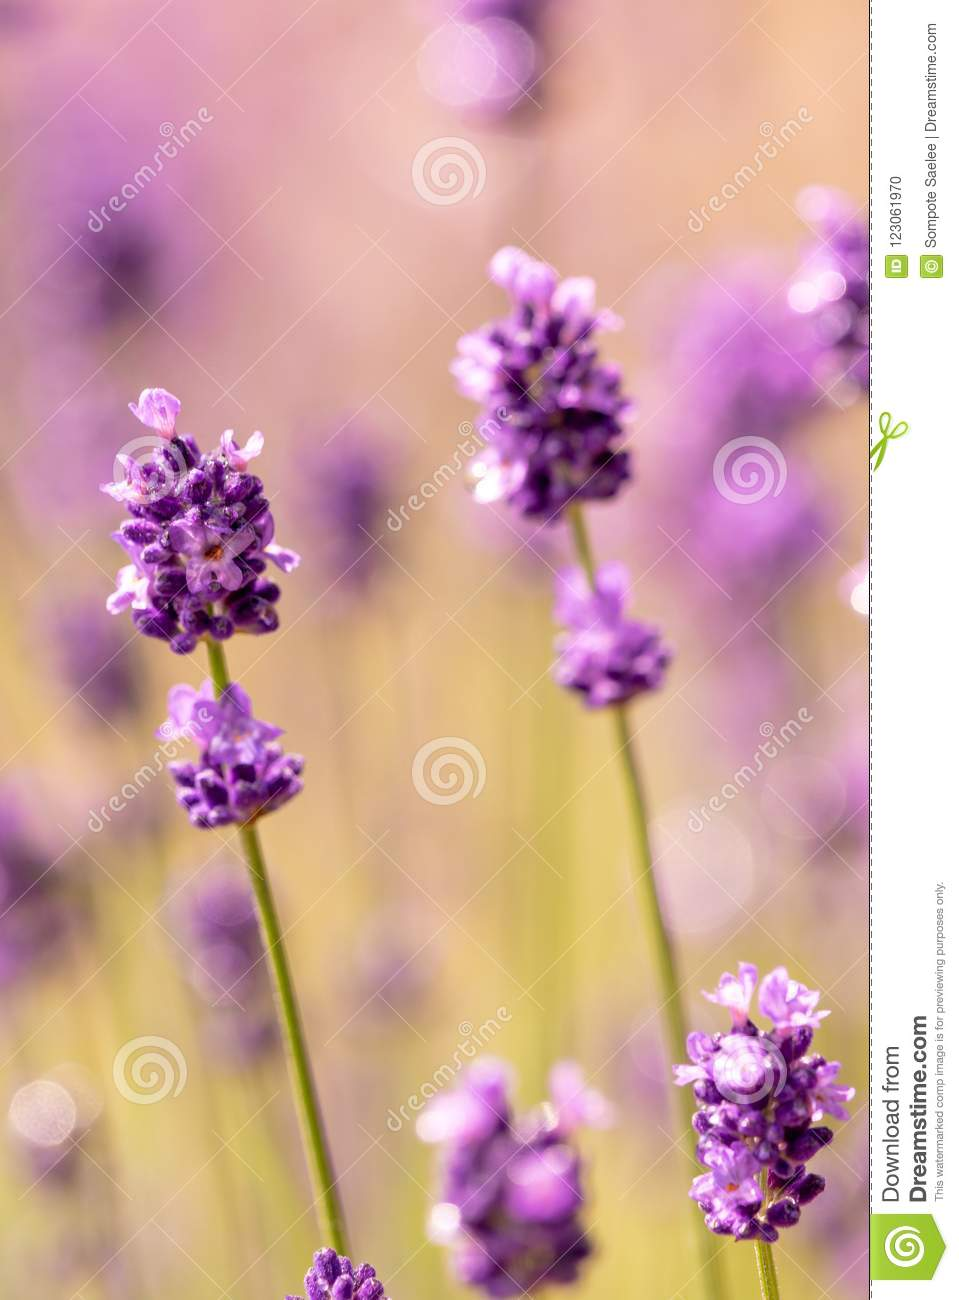 Close up purple lavender flowers with soft focus background